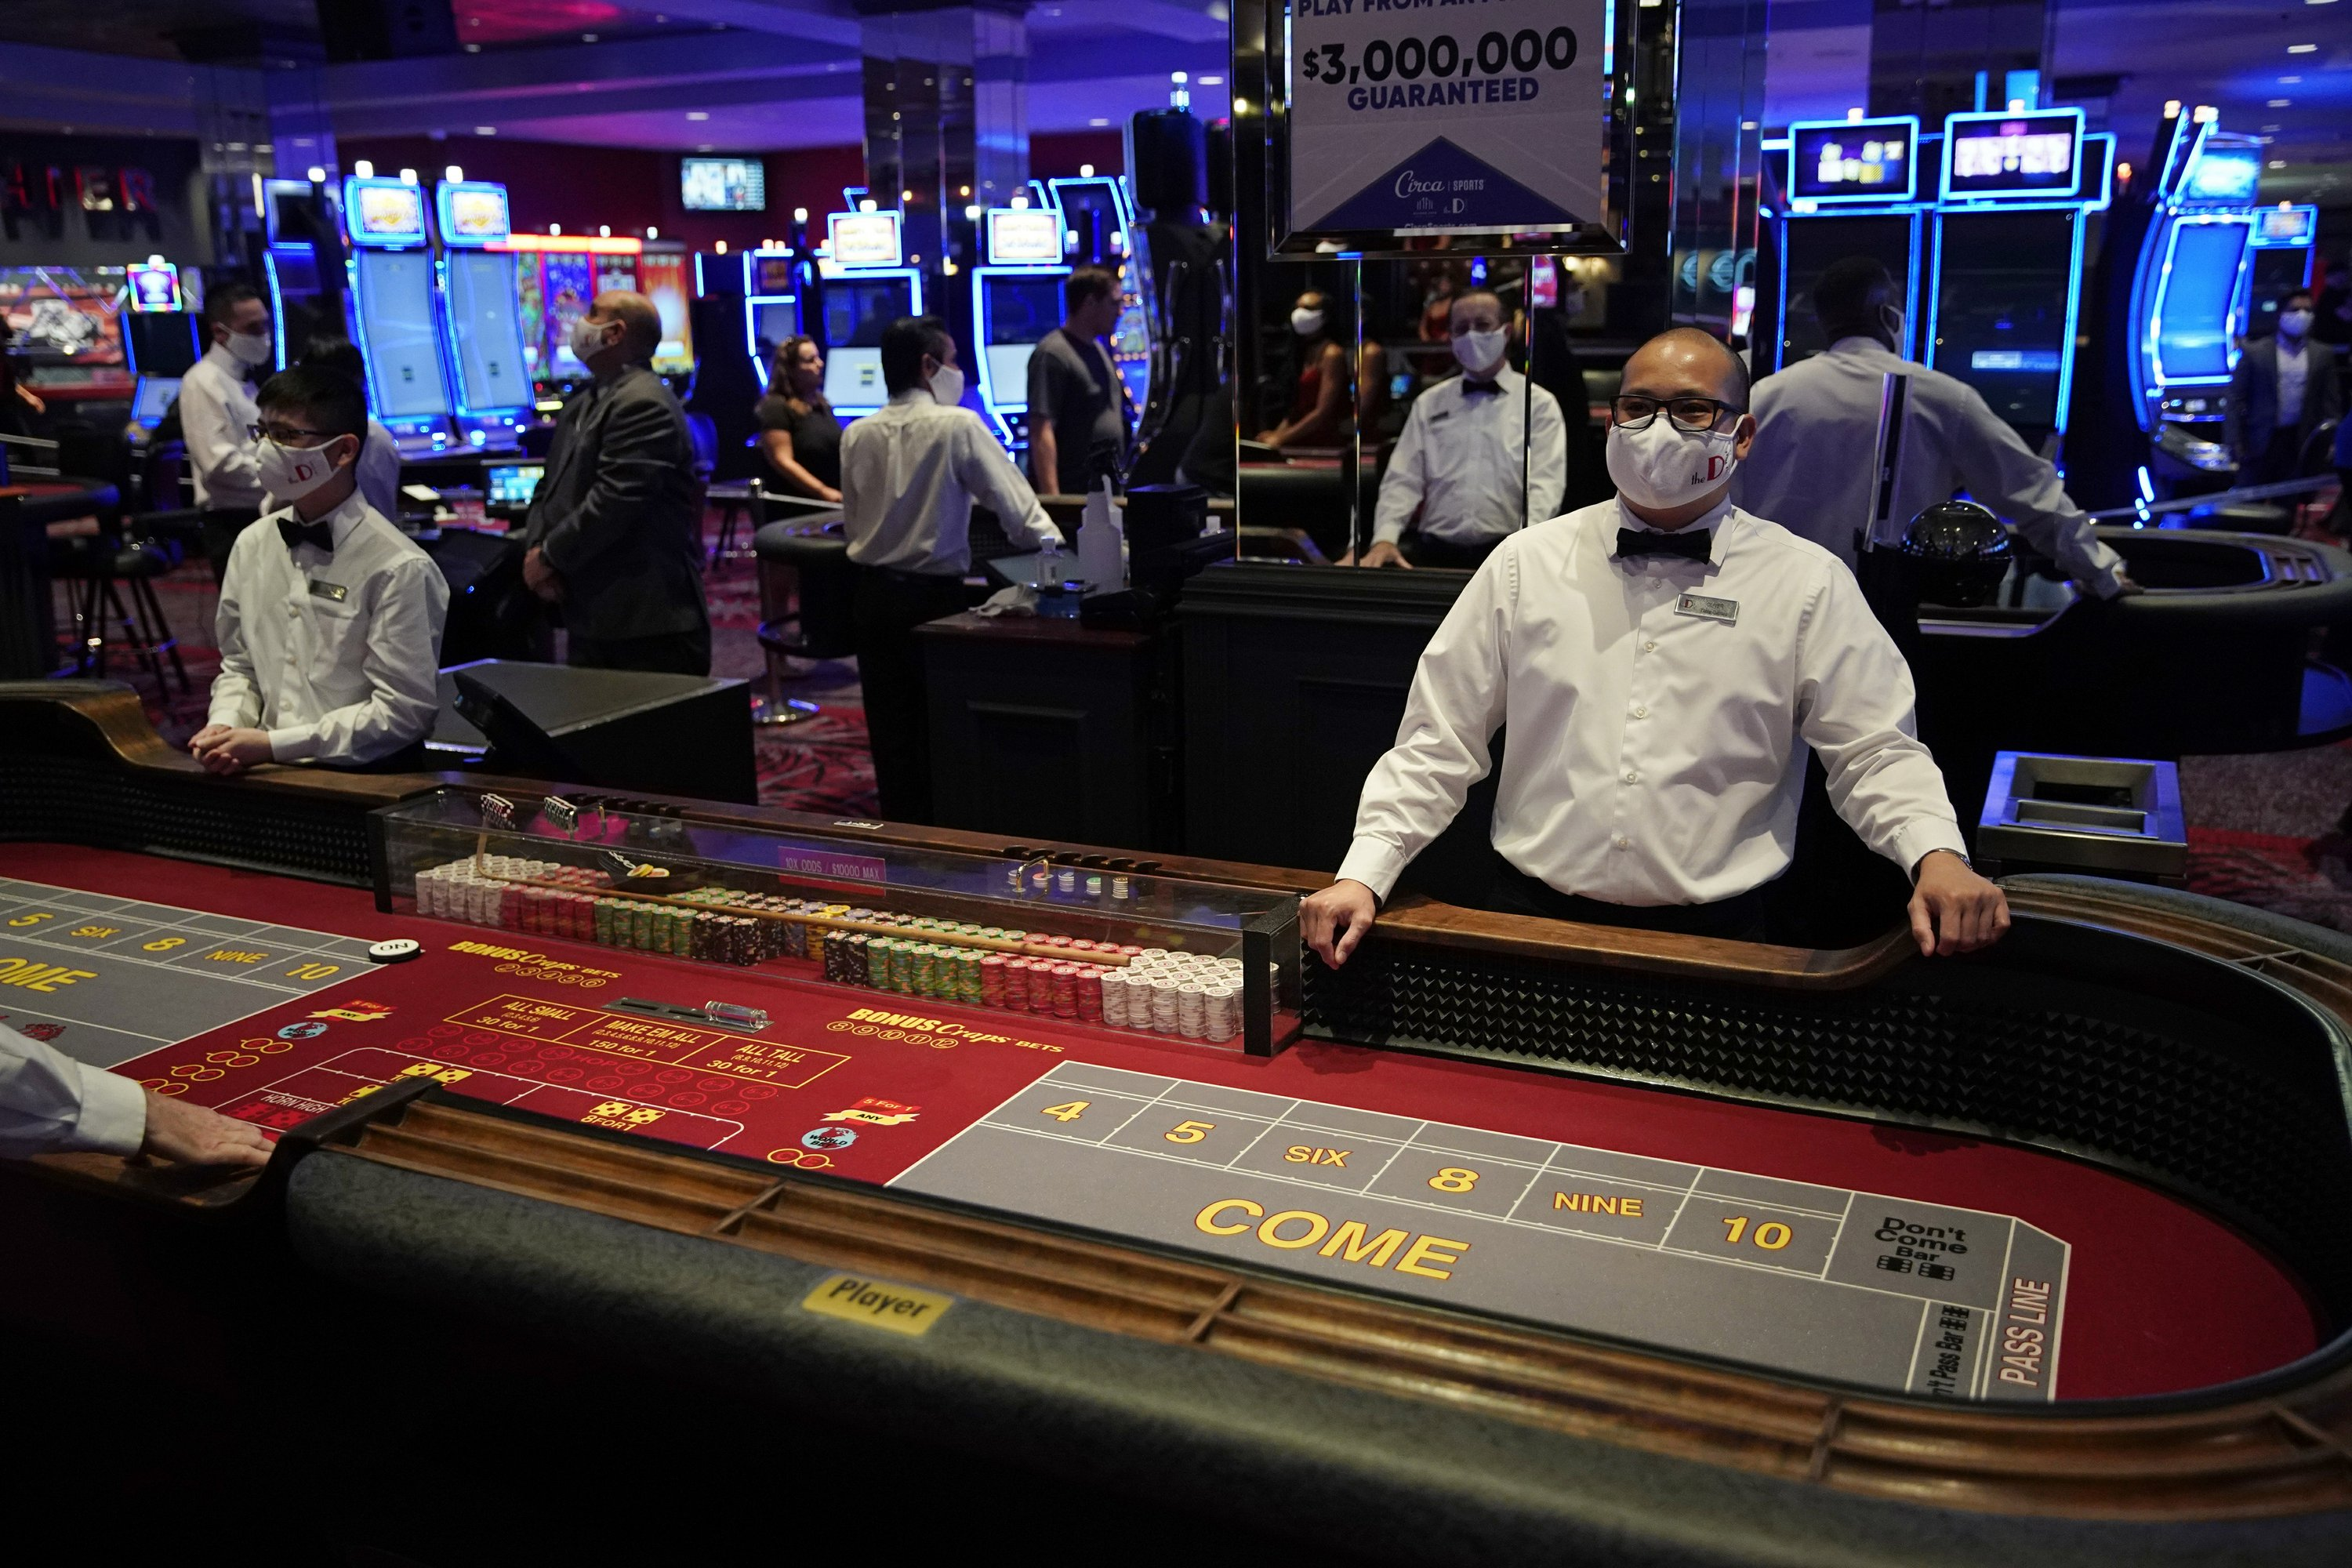 Vegas, baby! Casinos reopen after long coronavirus closure